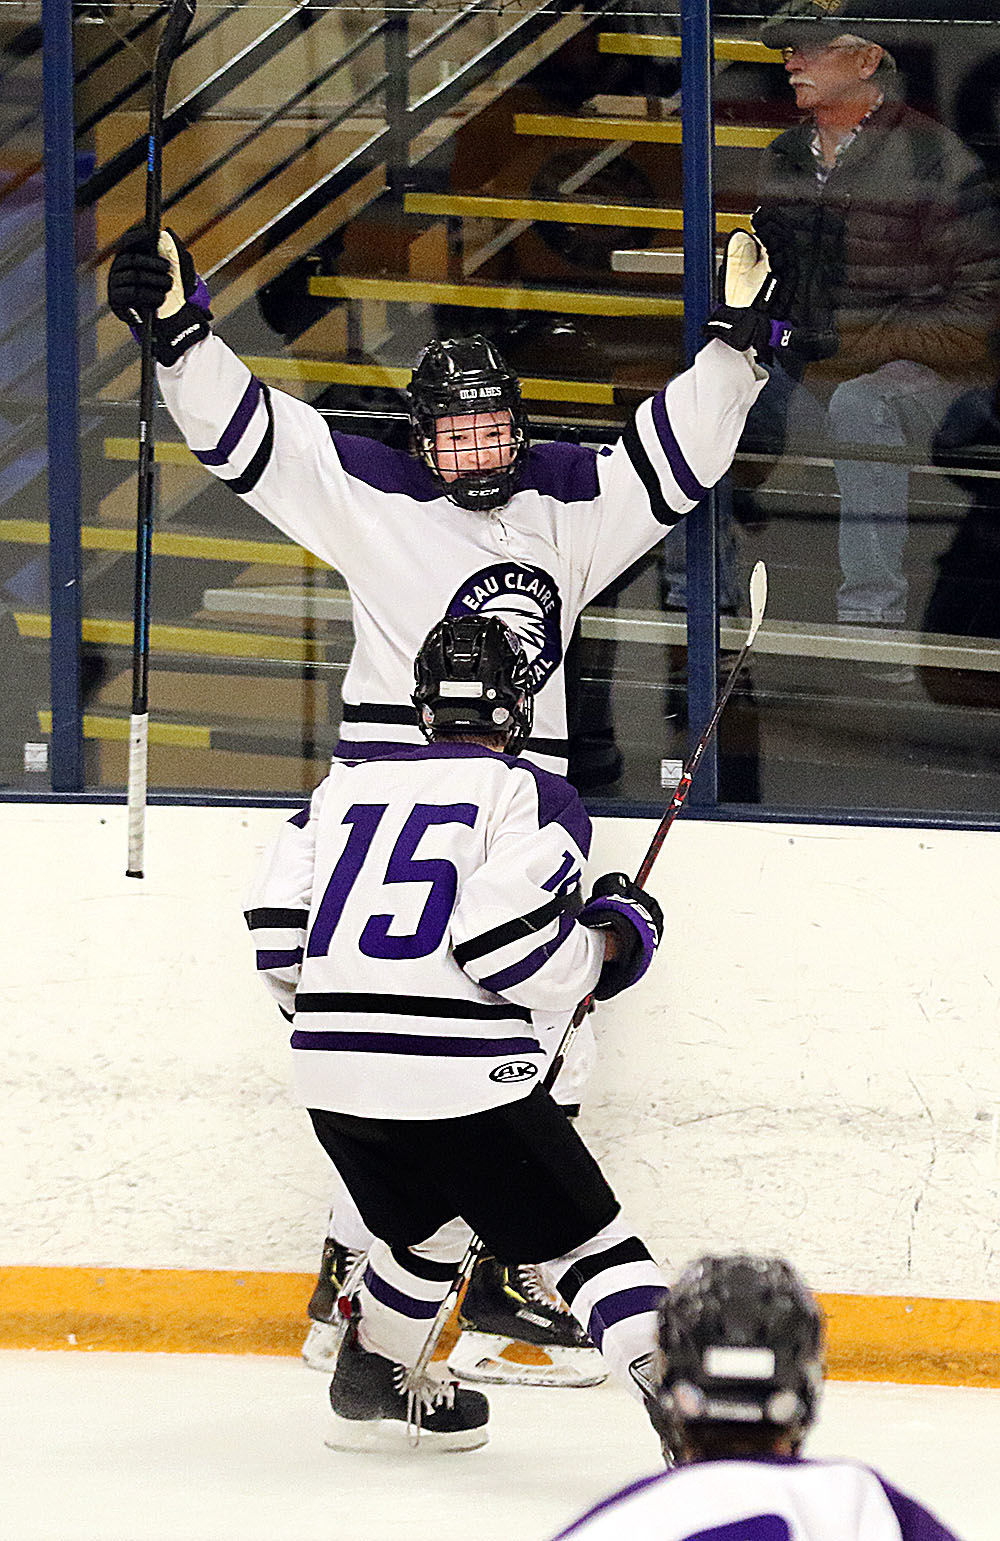 113019_sk_abes_wwest_hky_12a